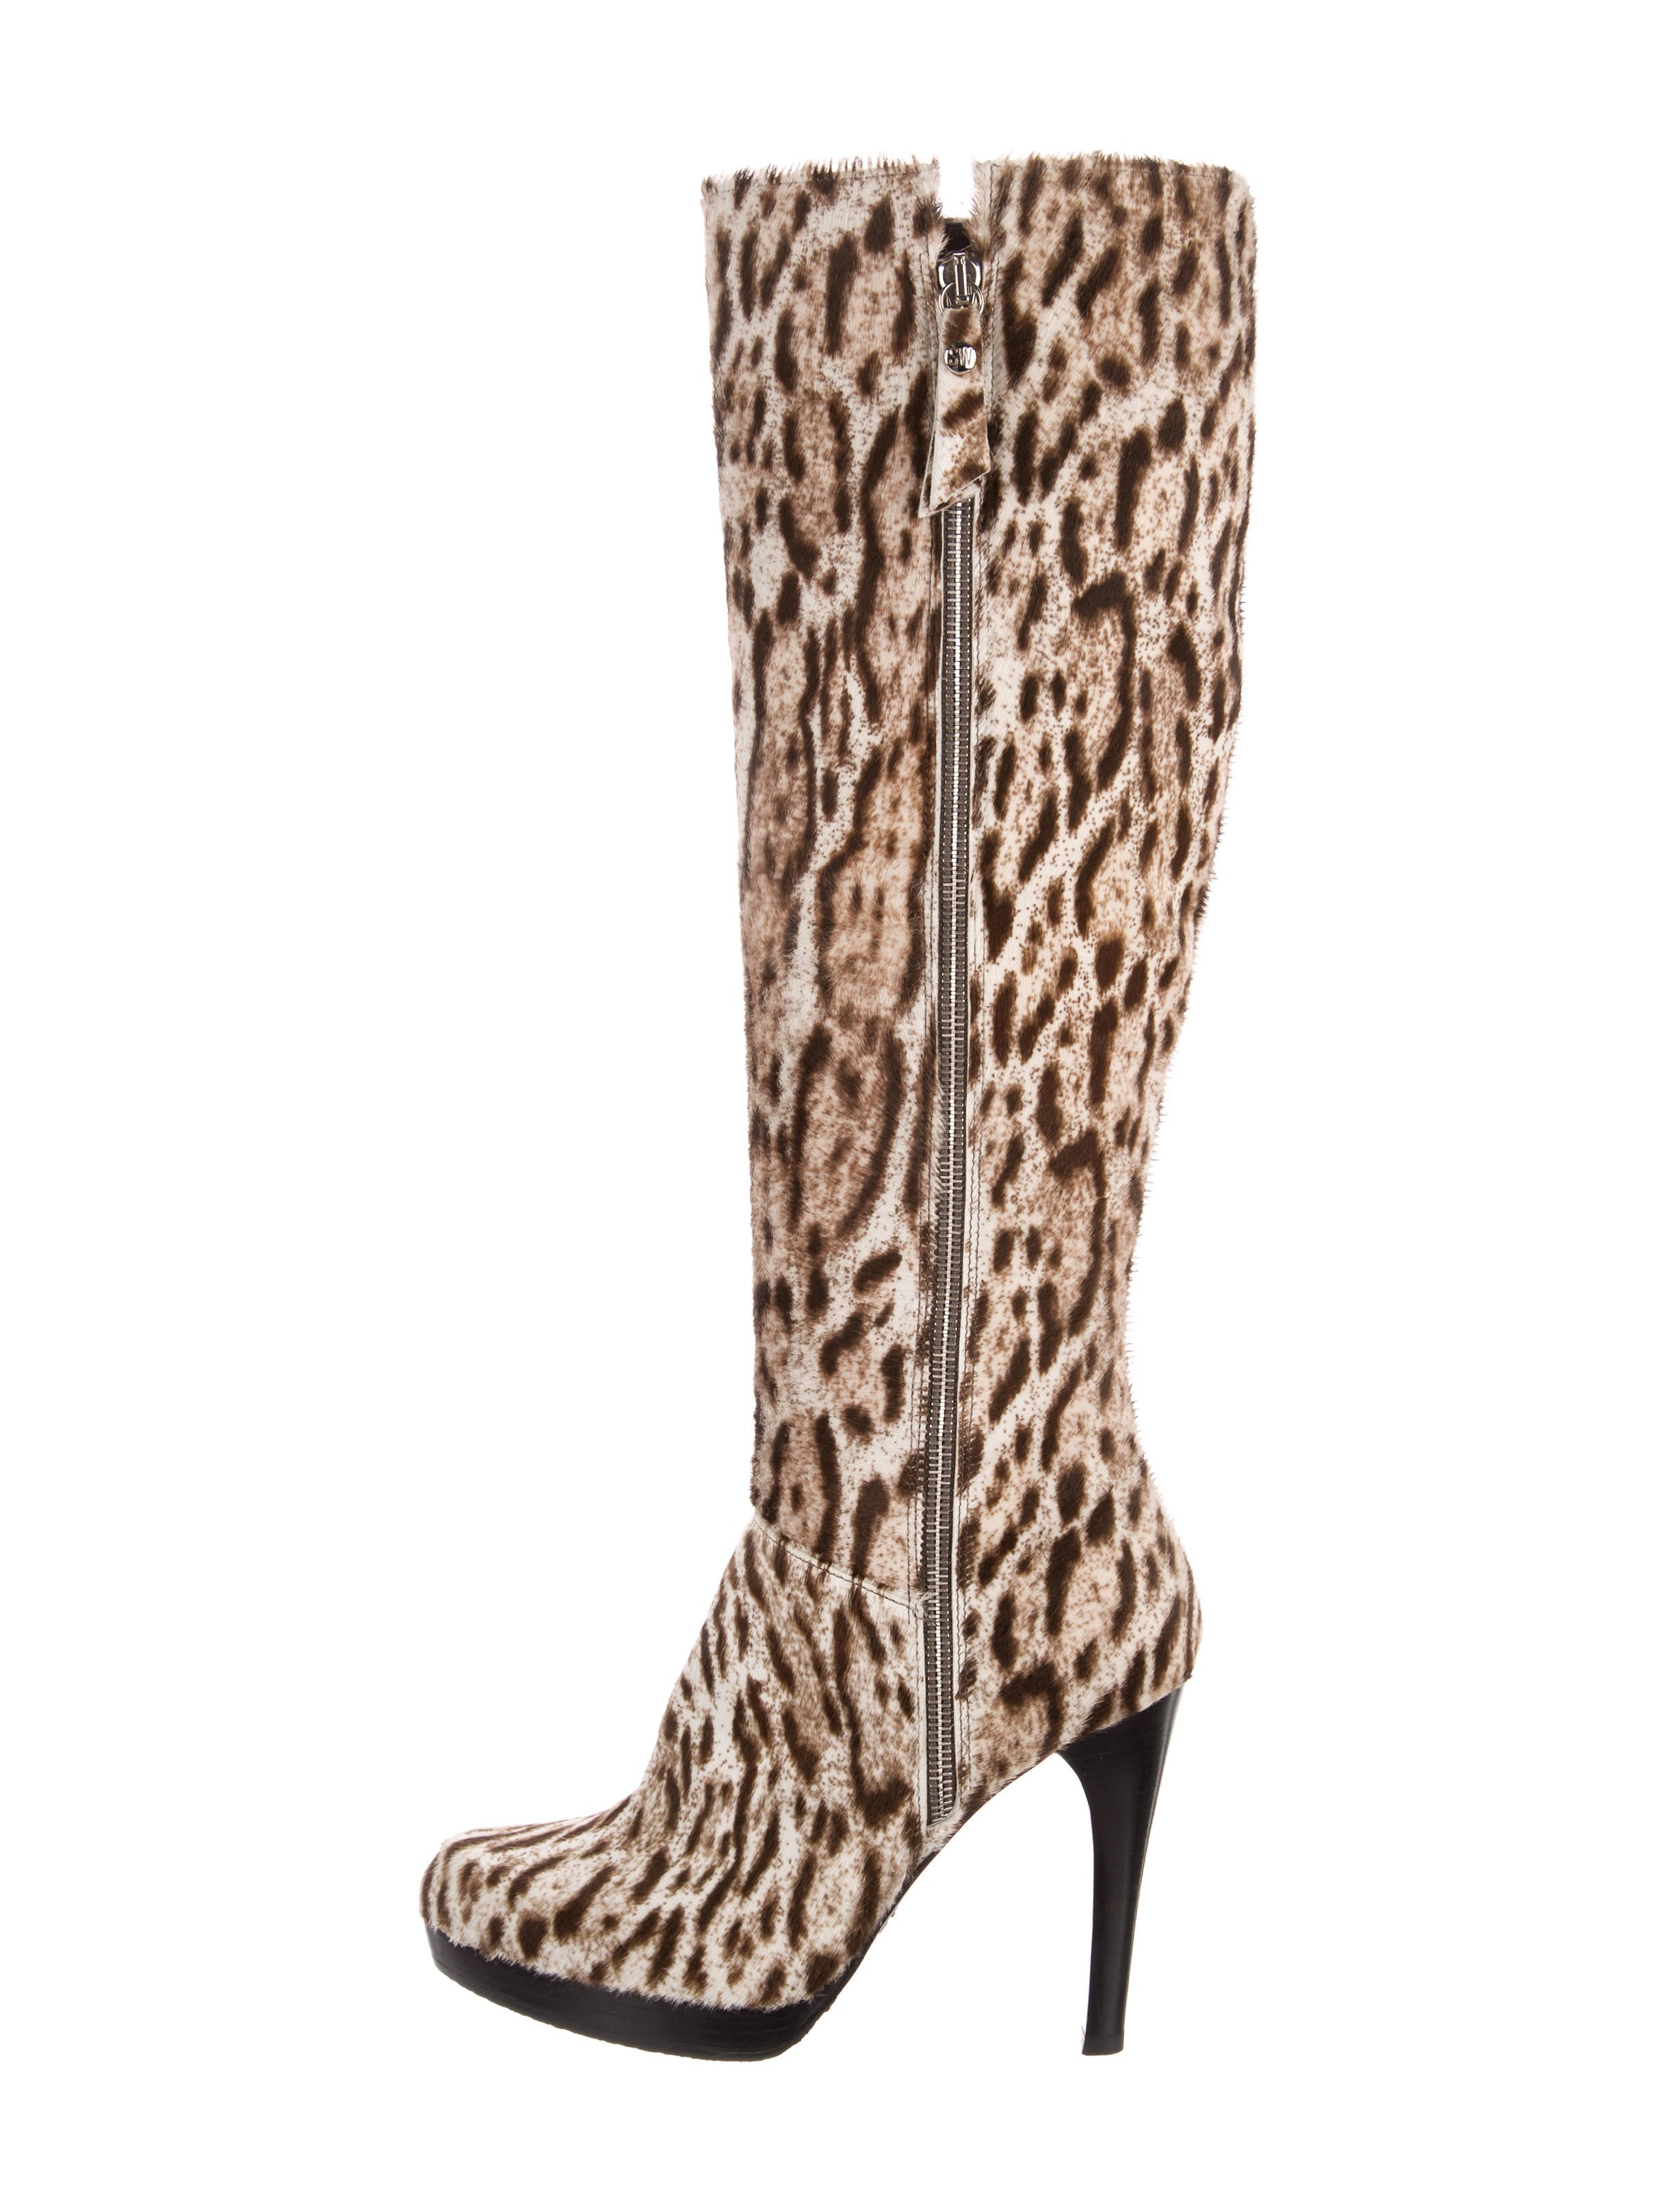 Stuart Weitzman Ponyhair Knee-High Boots outlet great deals sale pre order amazing price sale online buy cheap collections rCJ5ZxC1x